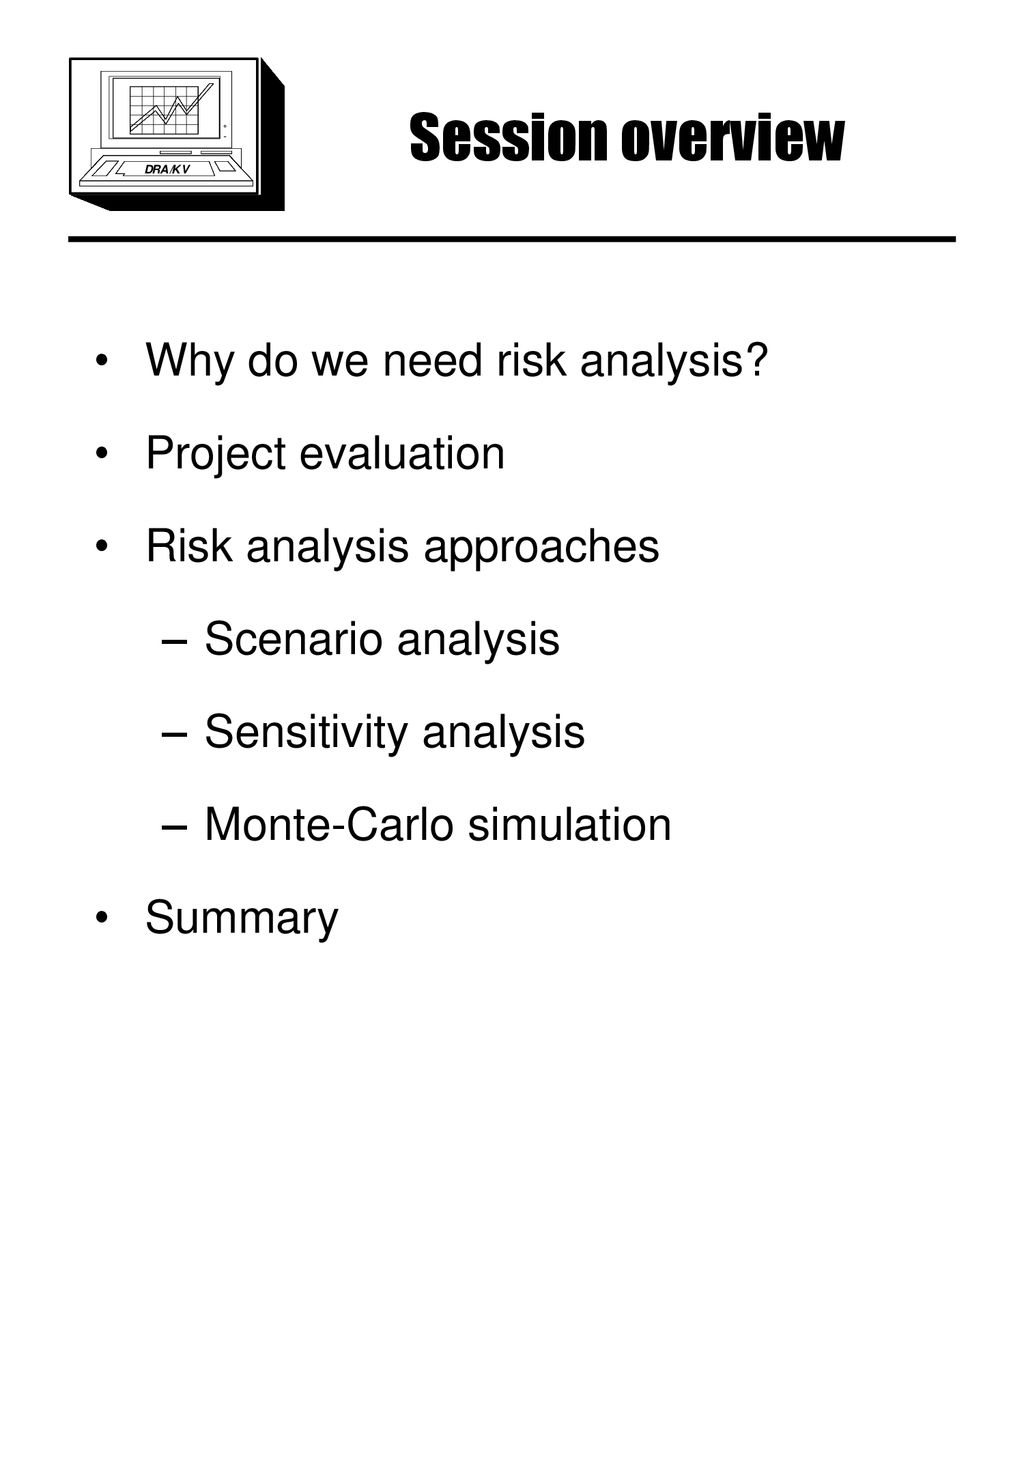 hight resolution of session overview why do we need risk analysis project evaluation